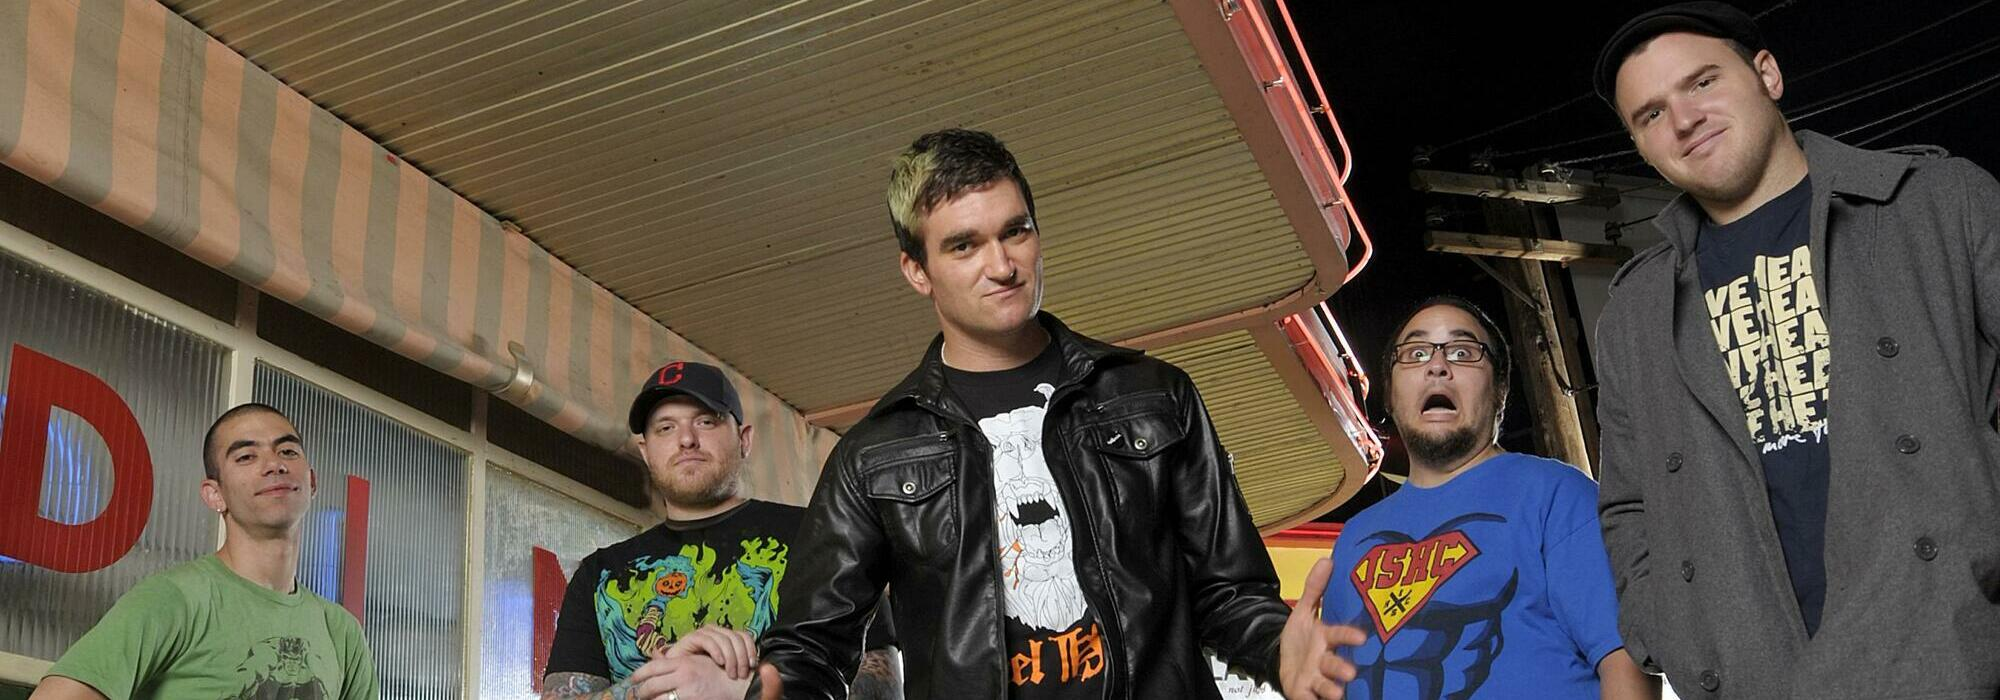 A New Found Glory live event